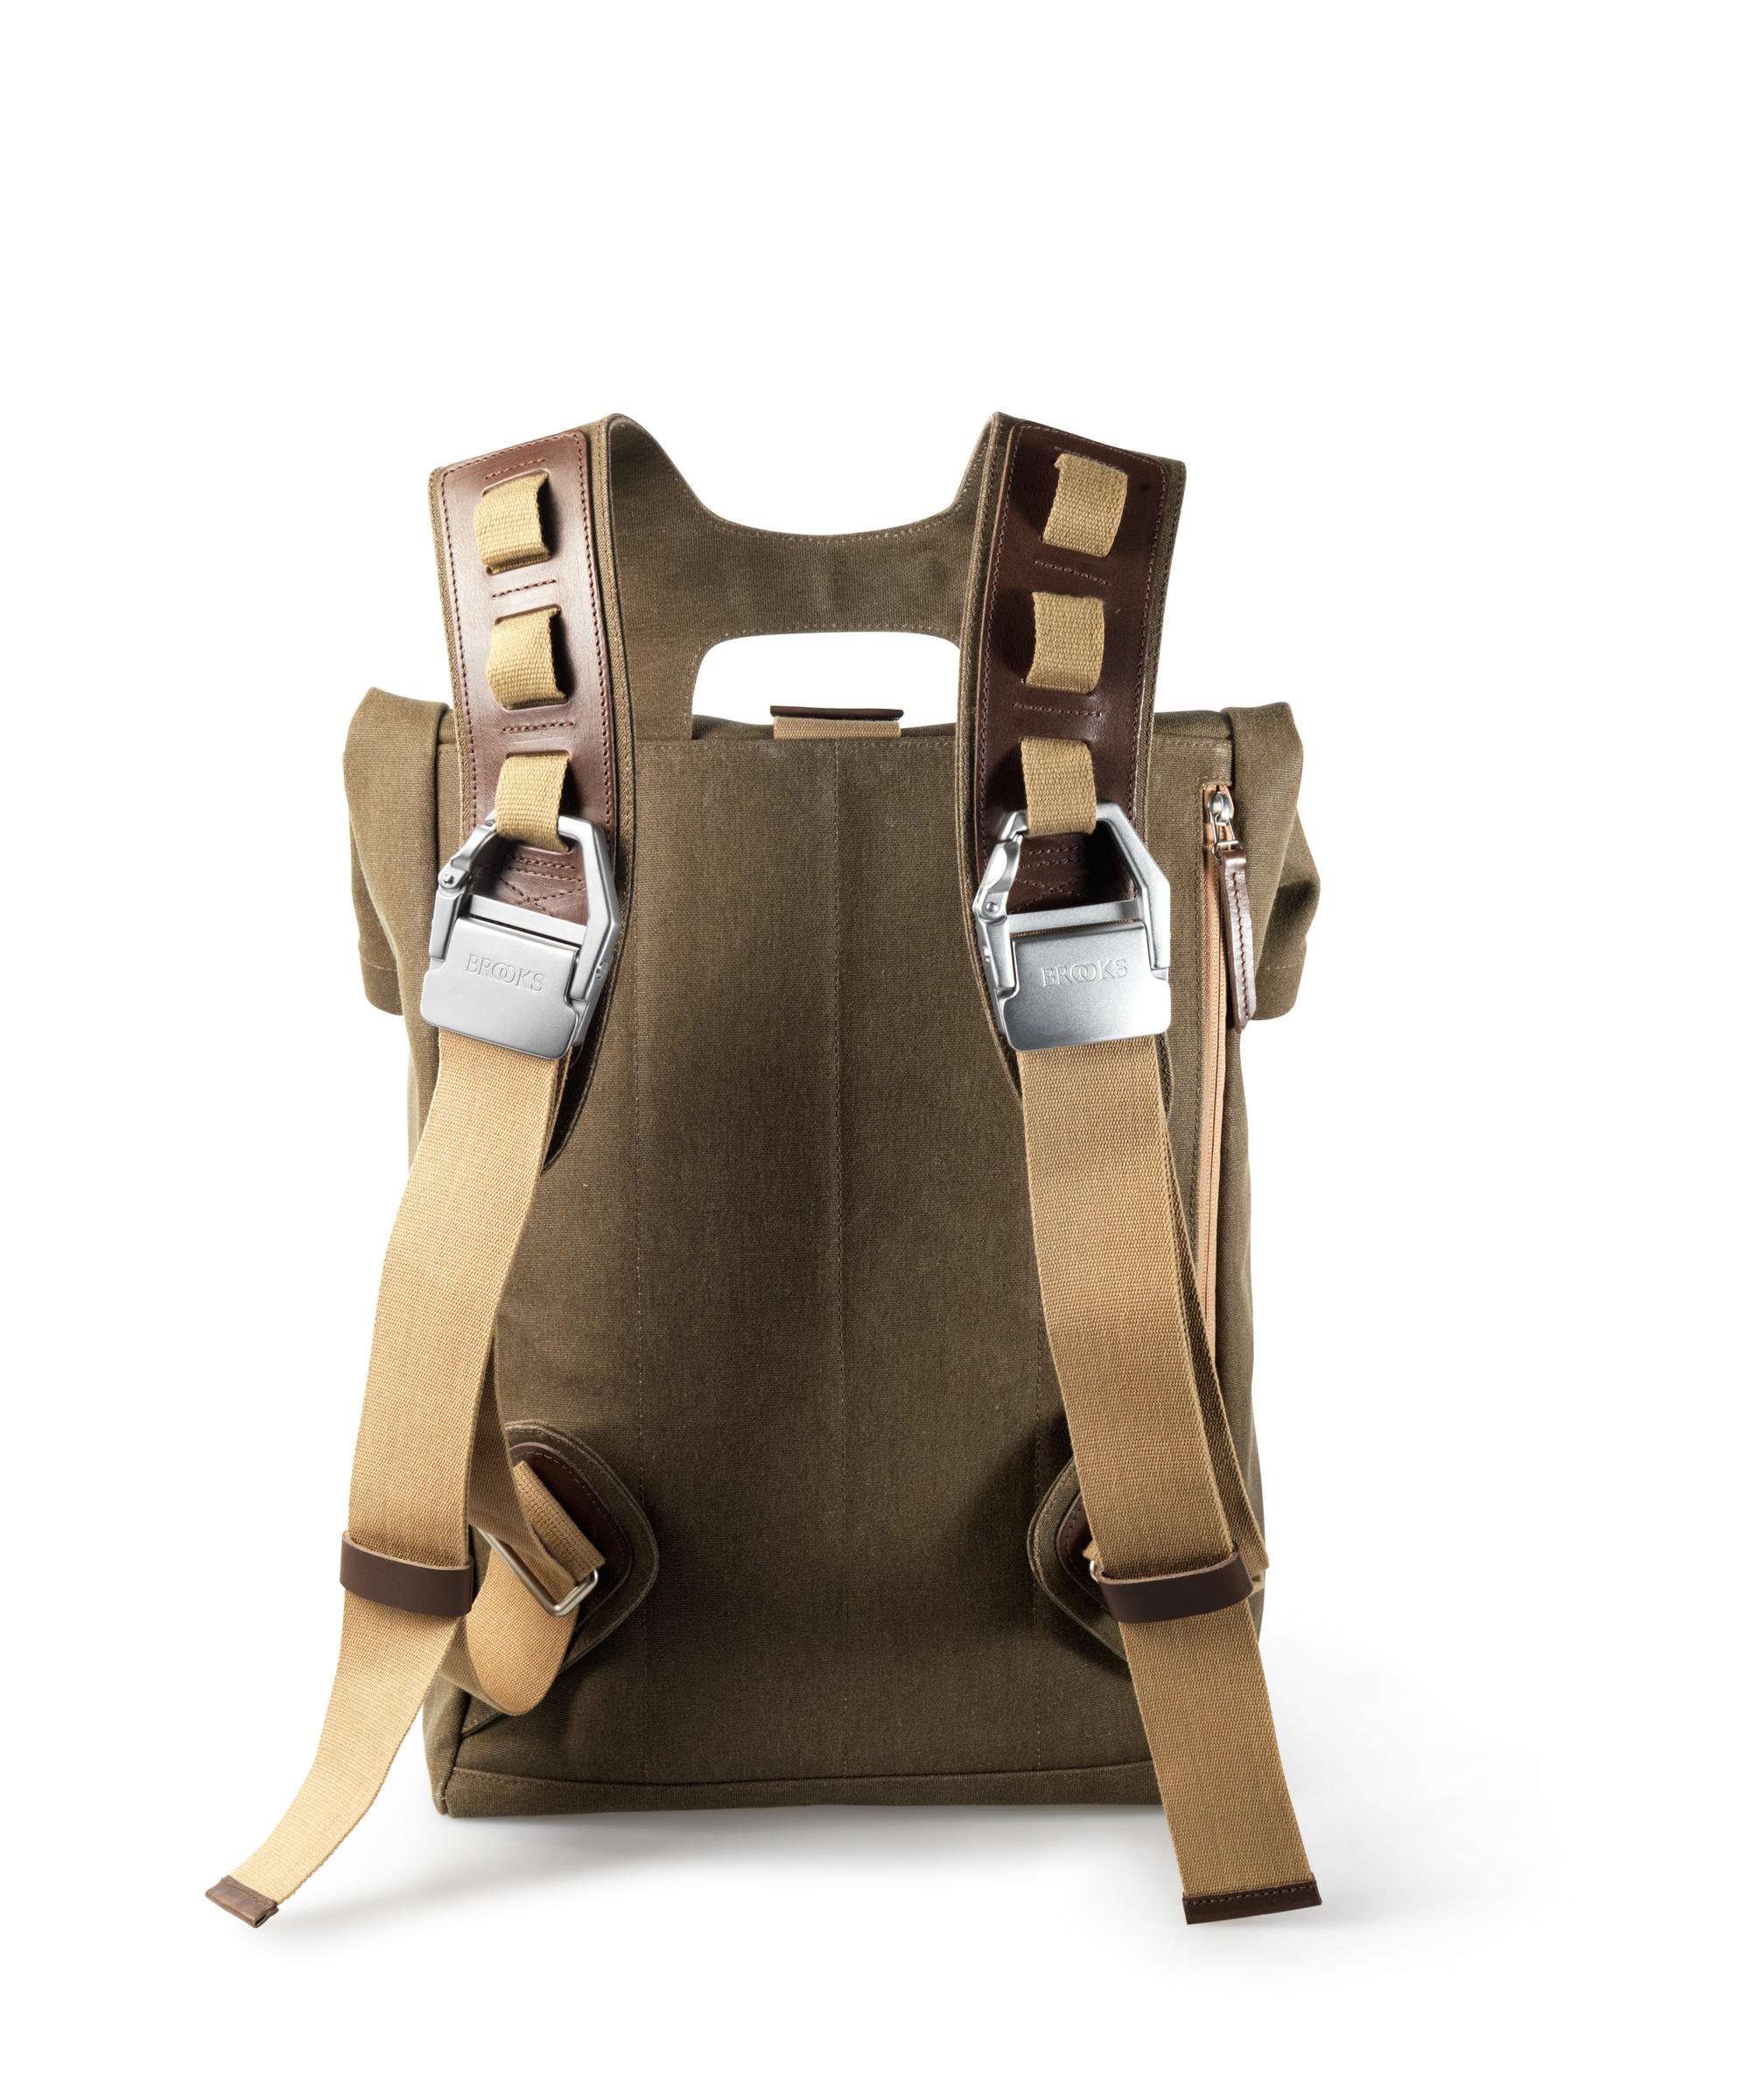 2d206d07ab Brooks Islington Rucksack - New York City Bike Shop | Bicycle Habitat